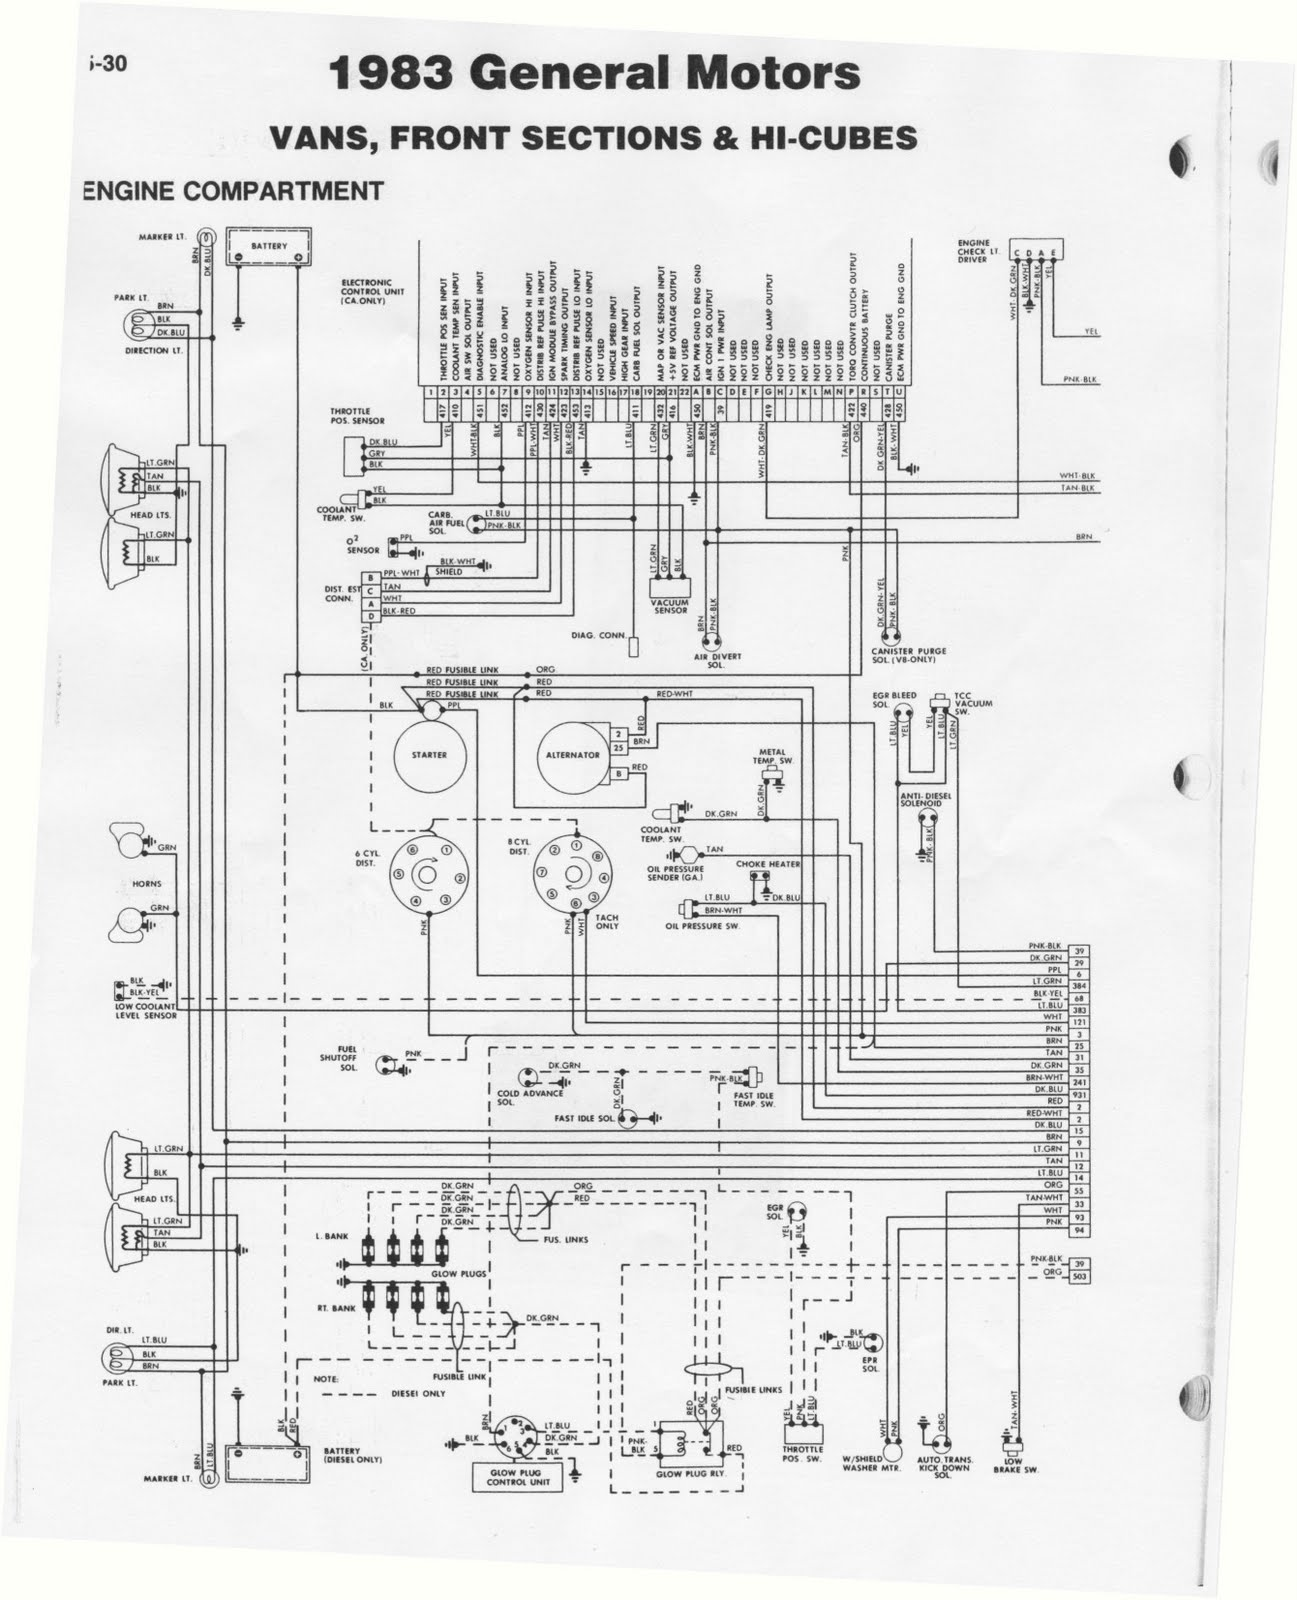 Astonishing Fleetwood Rv Wiring Diagram On Fleetwood Motorhome Inverter Wiring Wiring Cloud Hisonuggs Outletorg